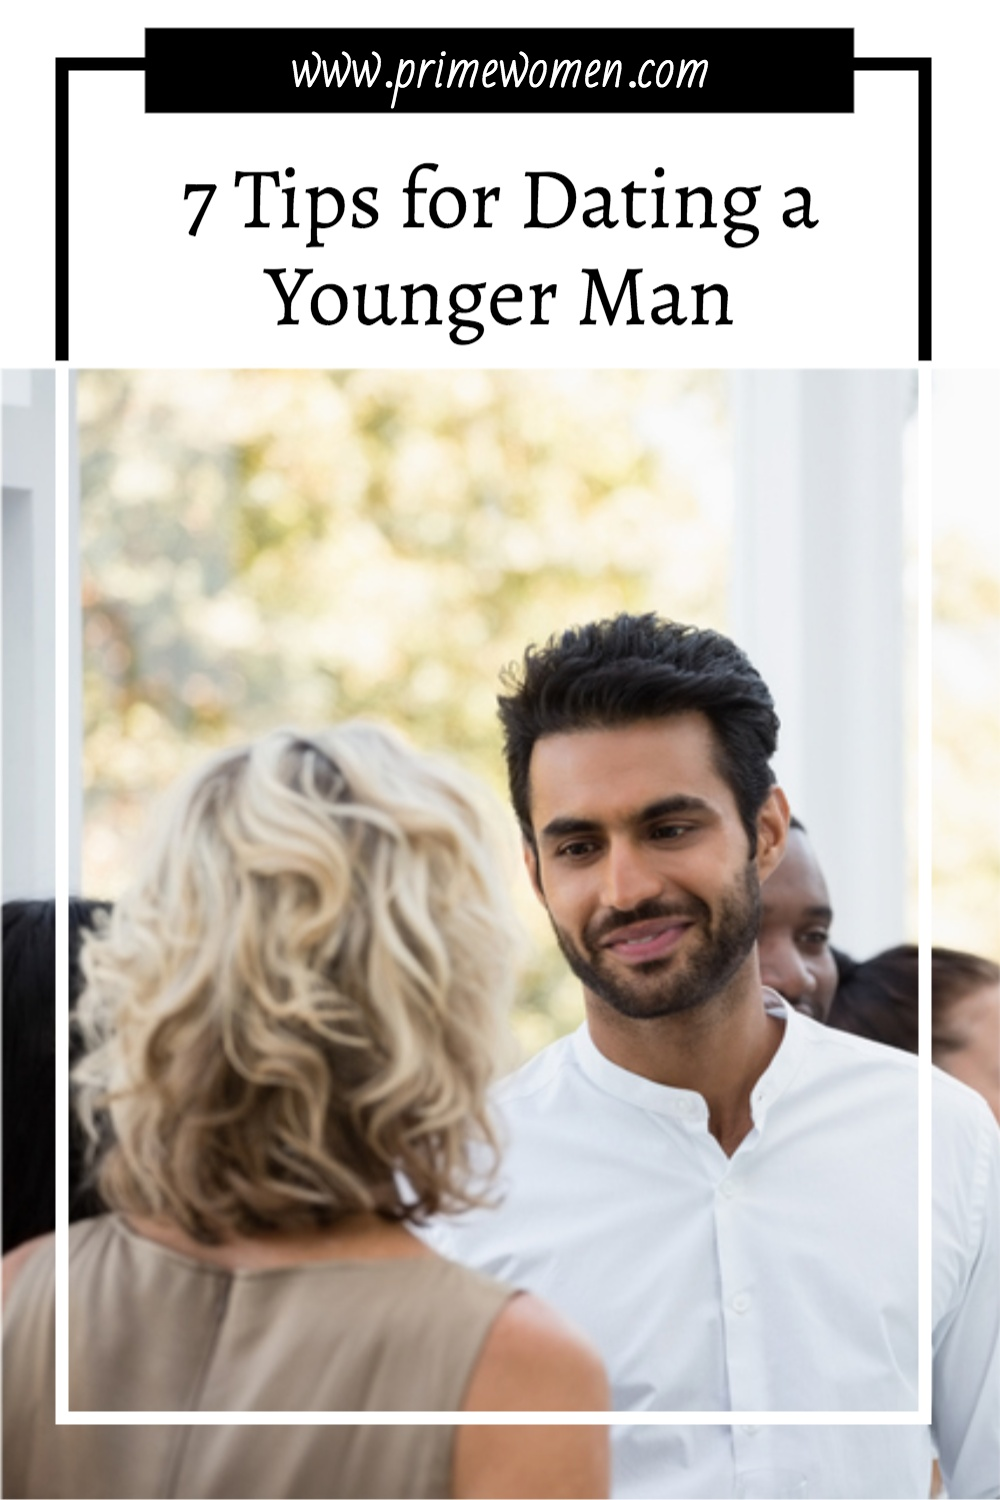 7-Tips-for-Dating-a-Younger-Man